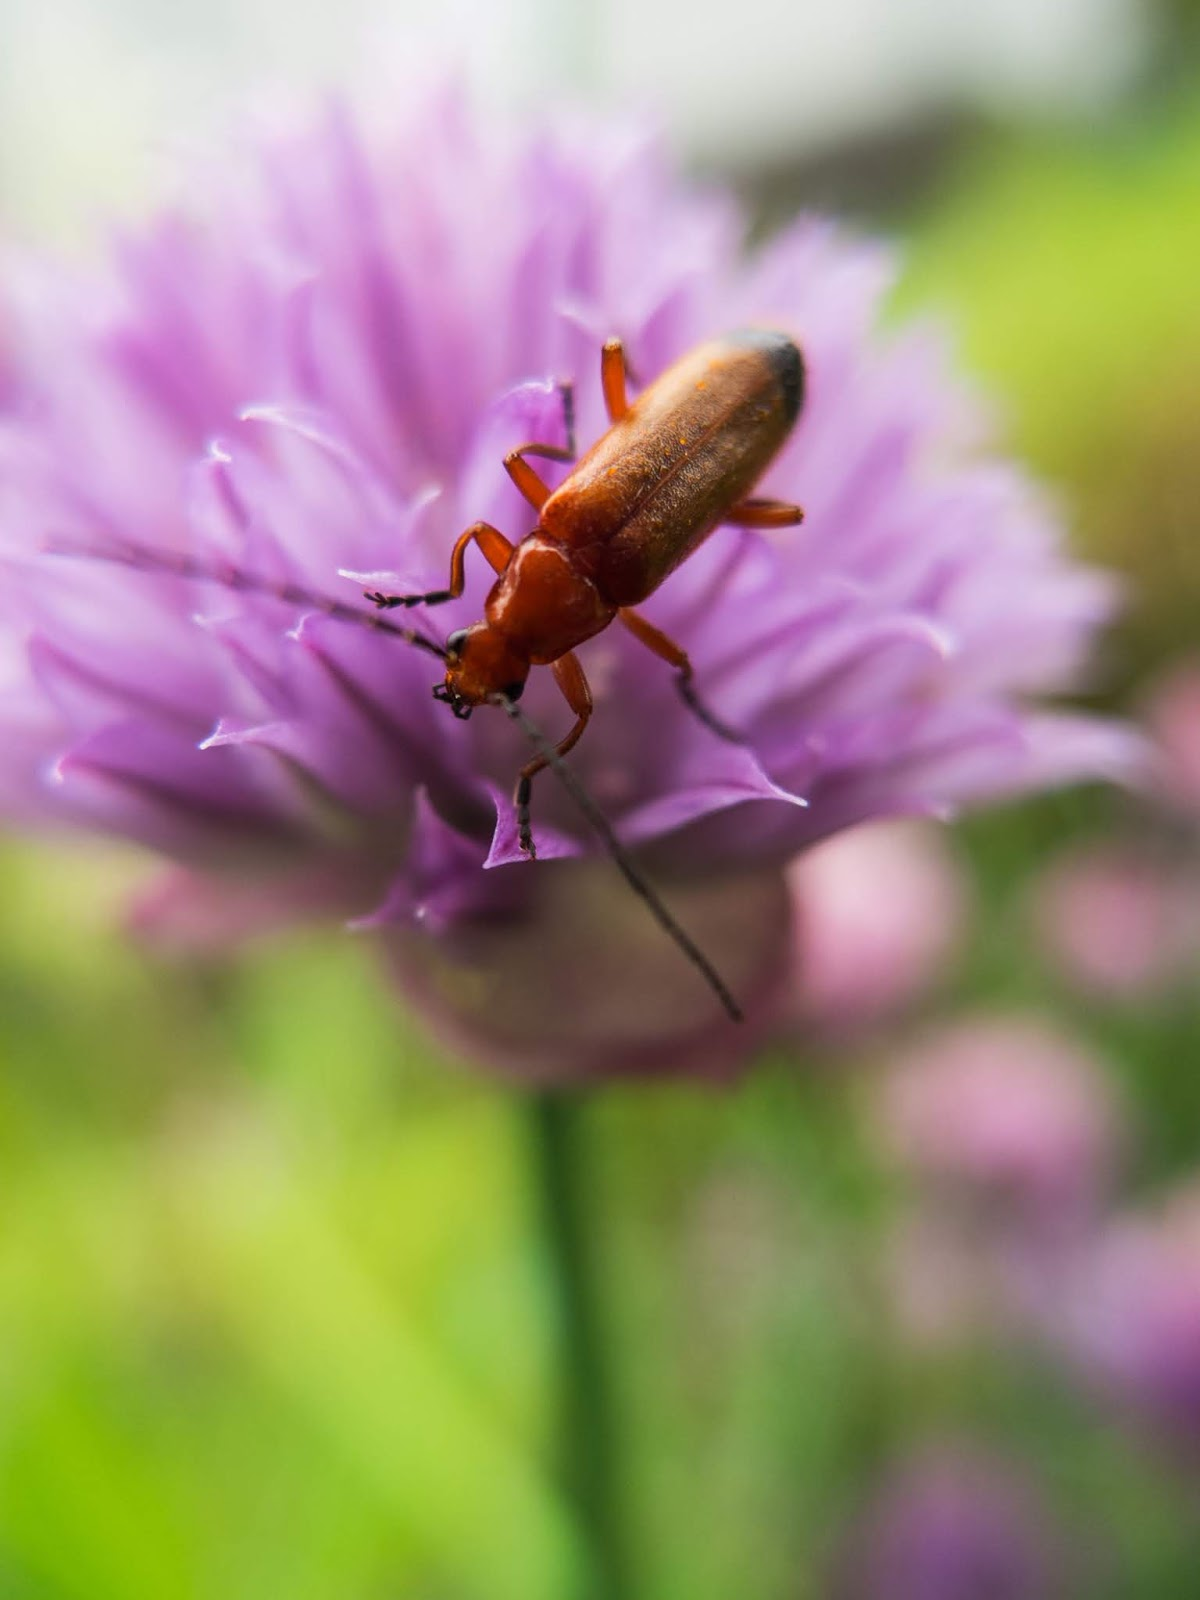 A macro of a Common Red Soldier Beetle on a purple Chive flower head.